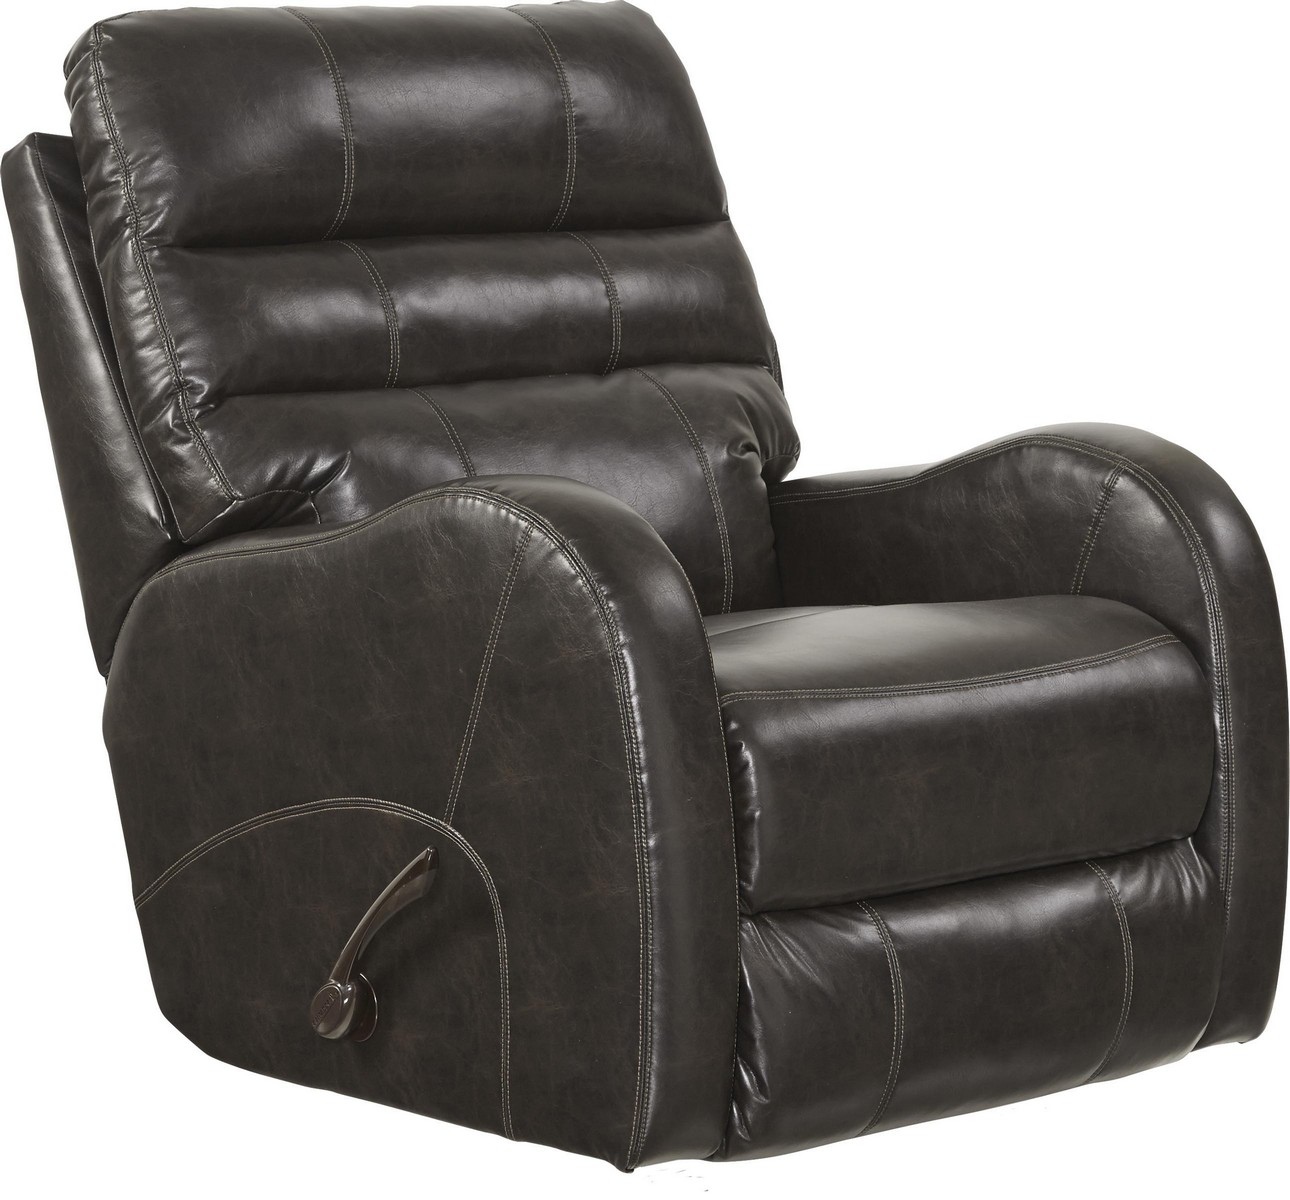 CatNapper Searcy Power Wall Hugger Recliner with USB Port - Coffee